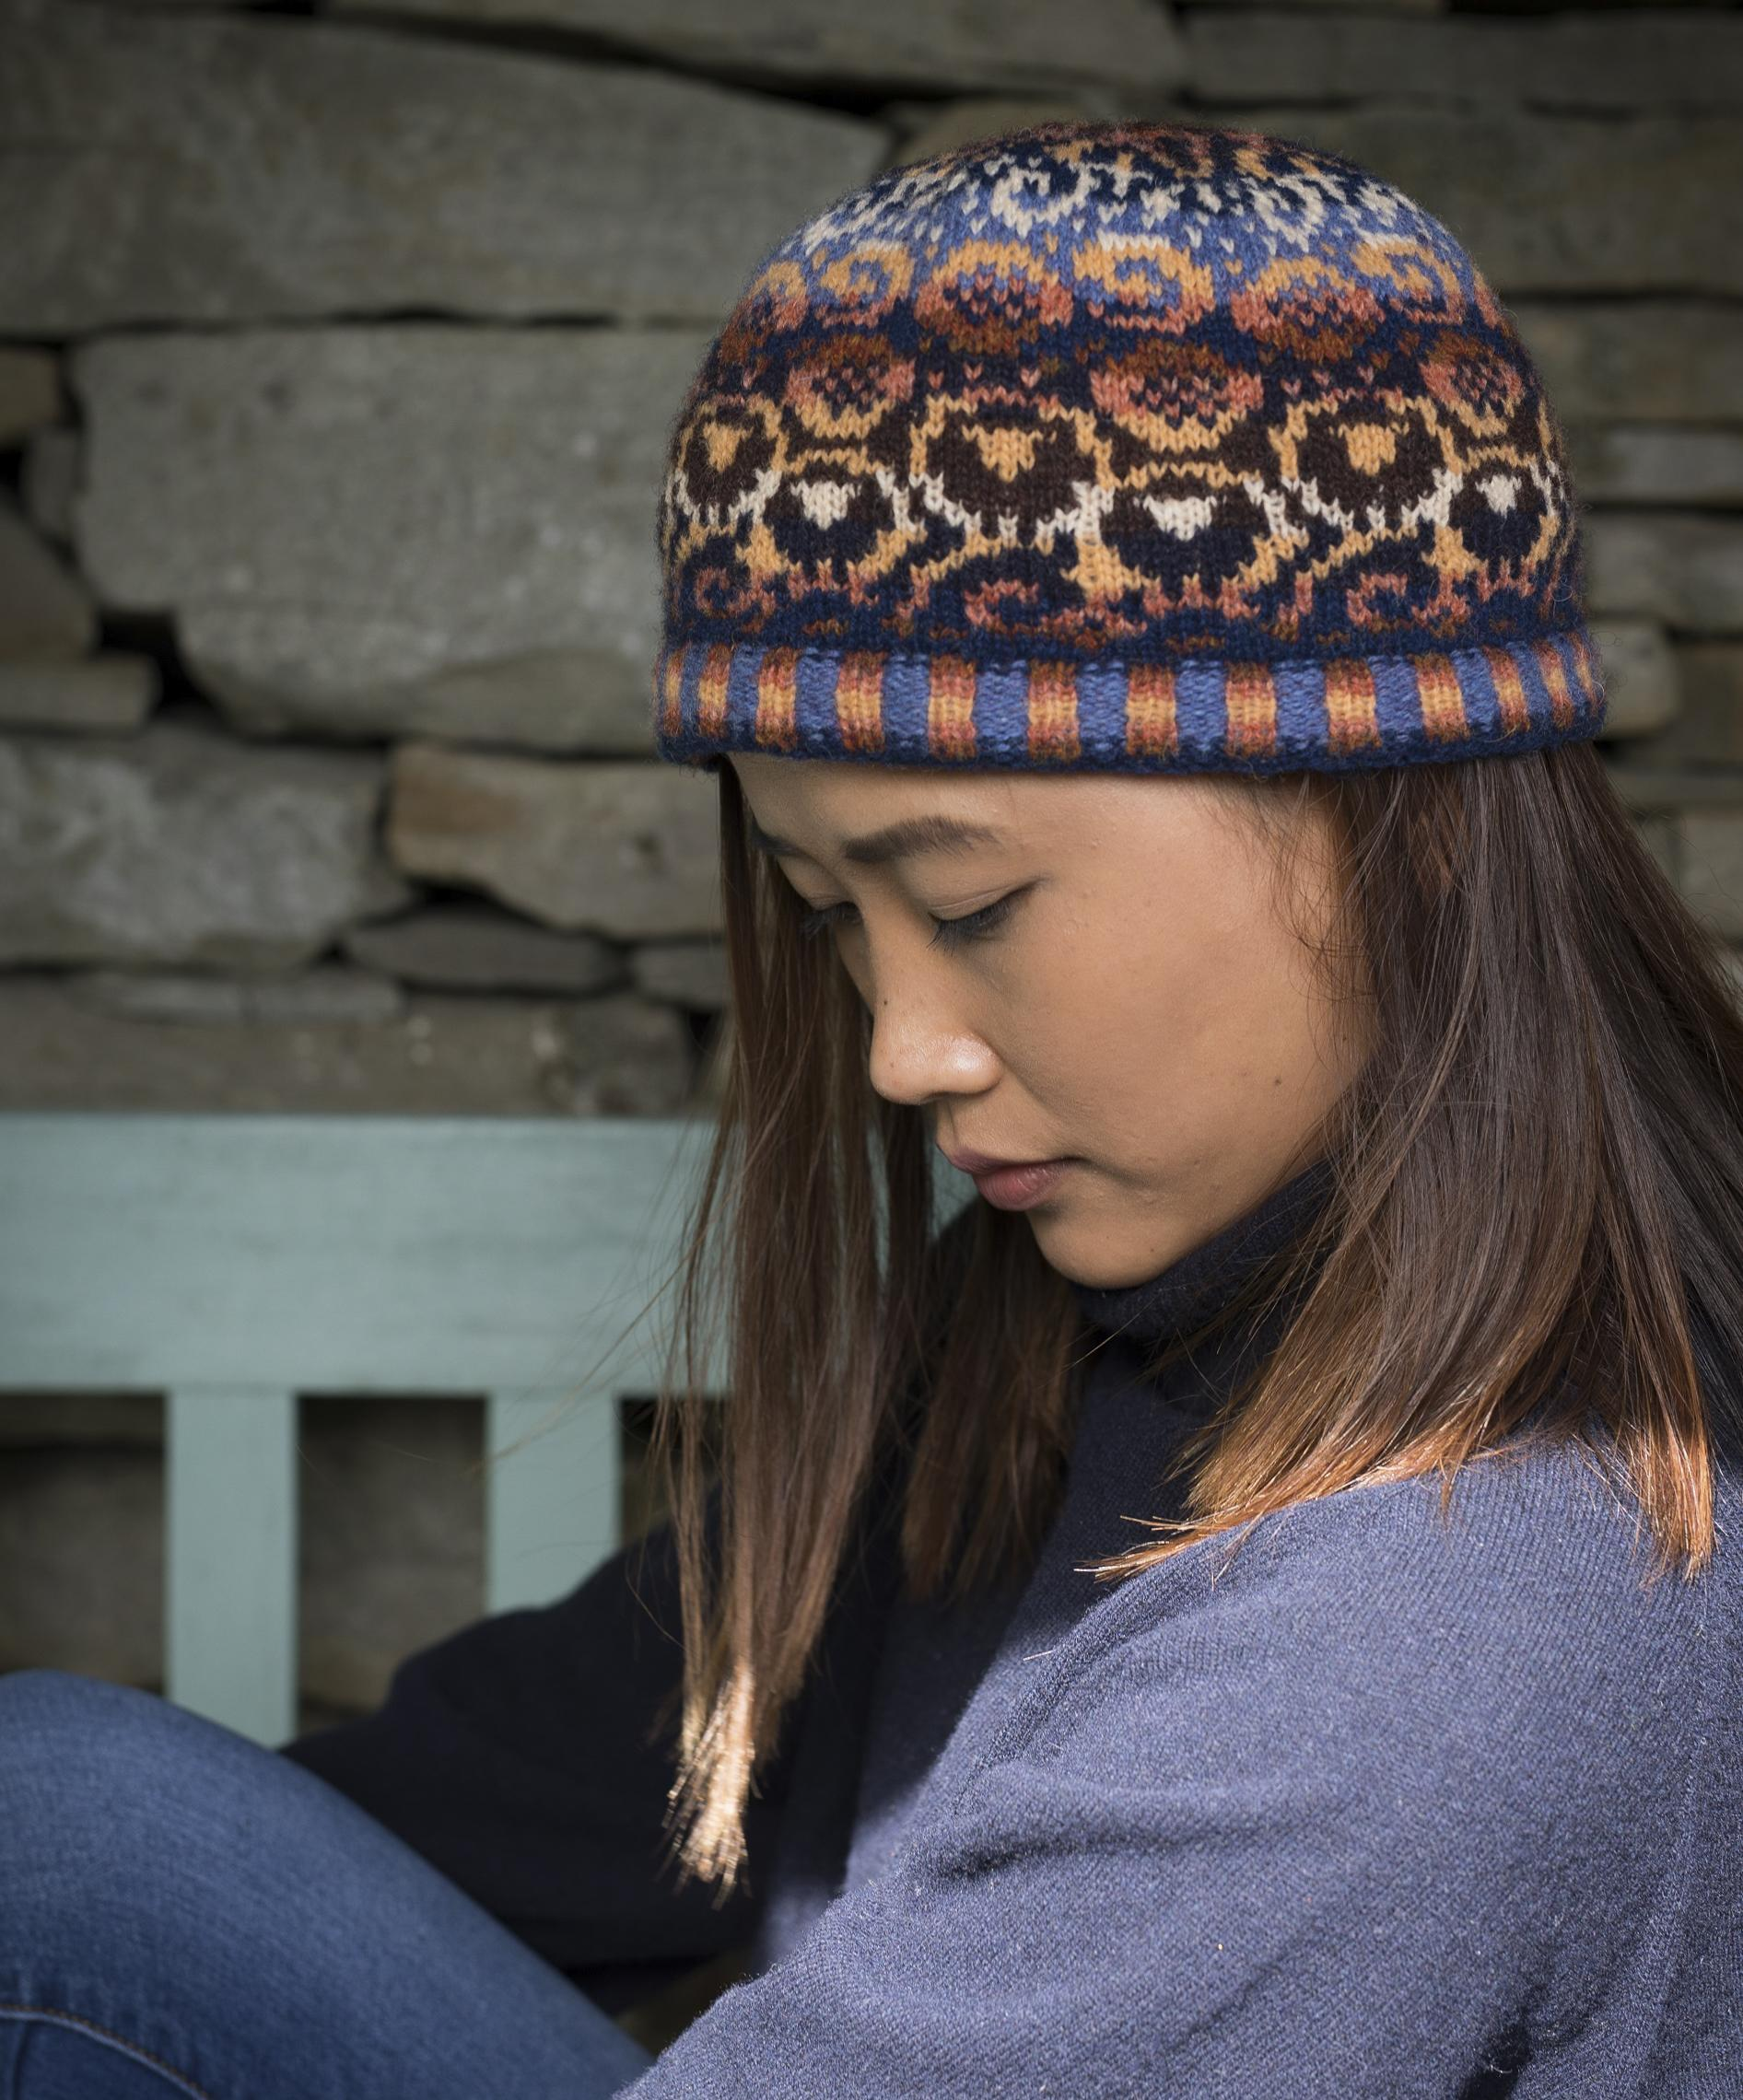 A model who appears to be of Asian heritage sits on a bench and looks down and to the side while wearing a brightly-patterned stranded colourwork hat bearing motifs of sheep, glyphs, waves and moons, in a palette of corals, golden shades and deep warm blues and browns